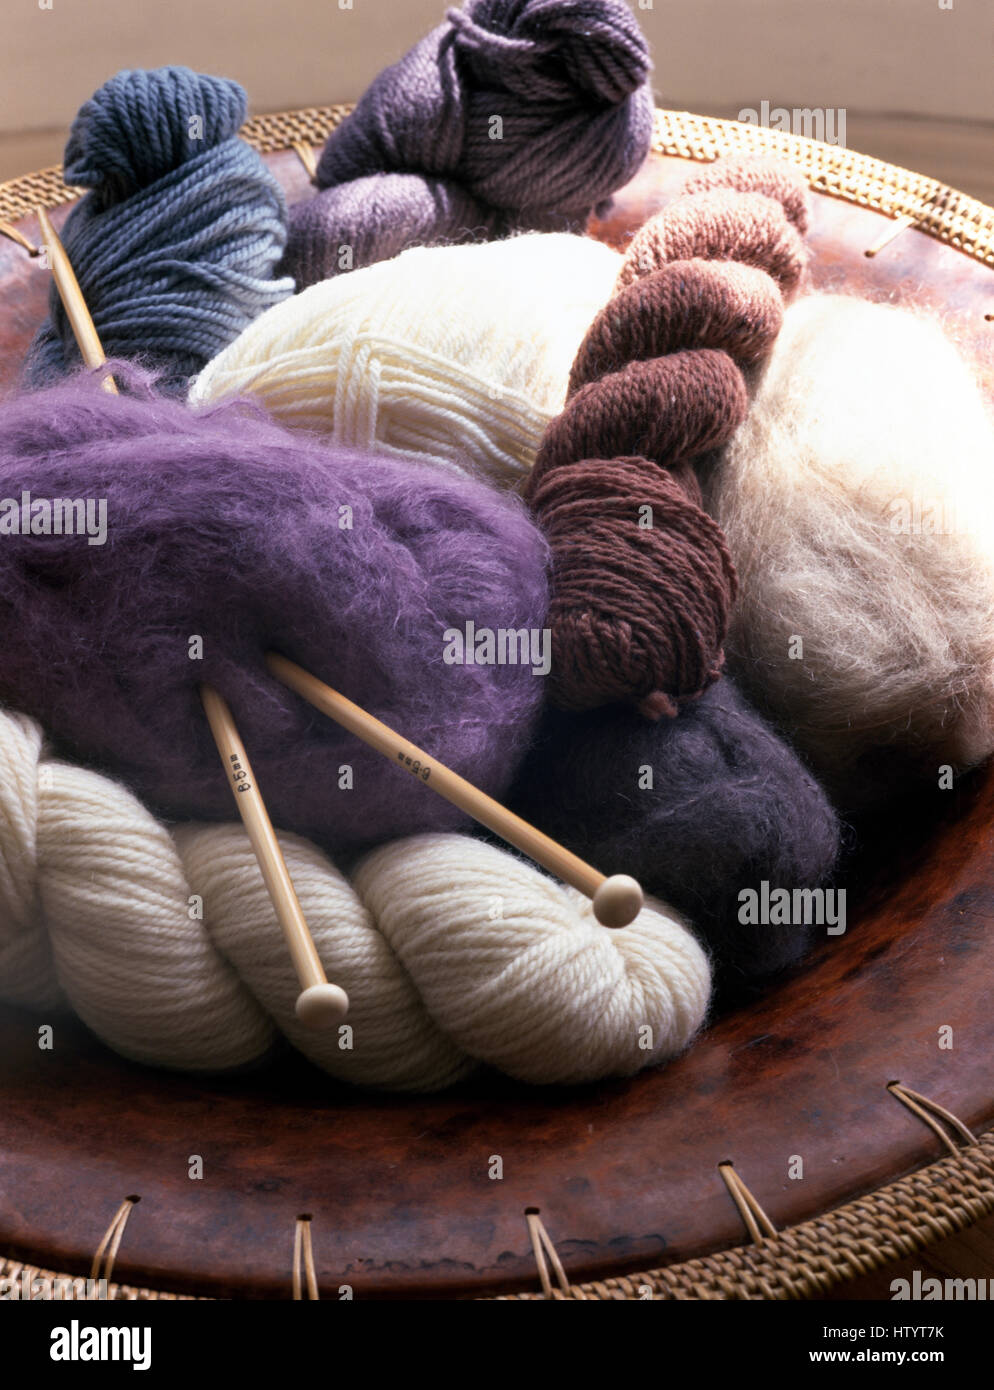 Close-up of skeins of wool and knitting needles Stock Photo